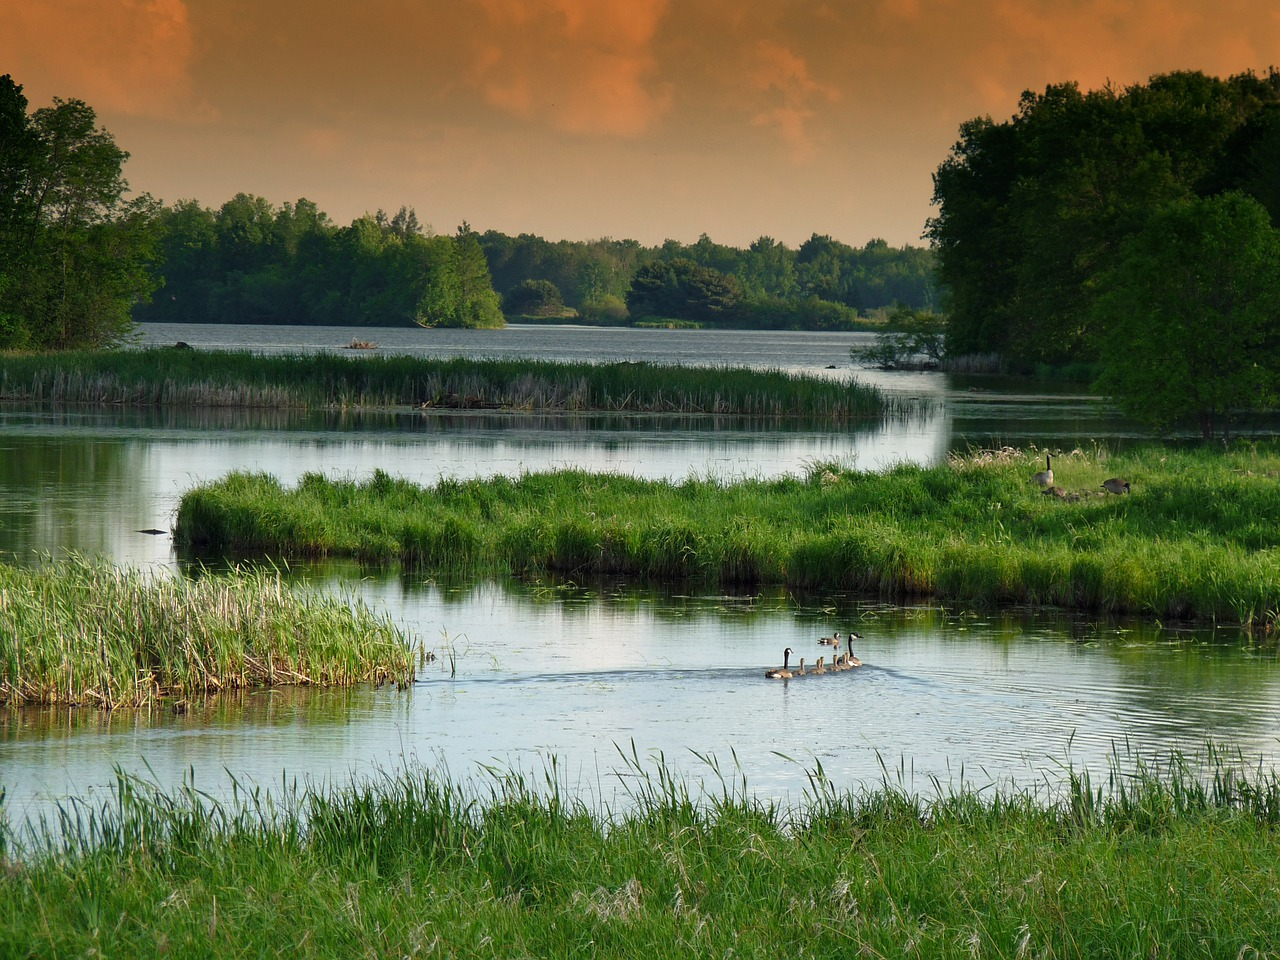 Lands and waters provide essential habitat as well as services that people rely on